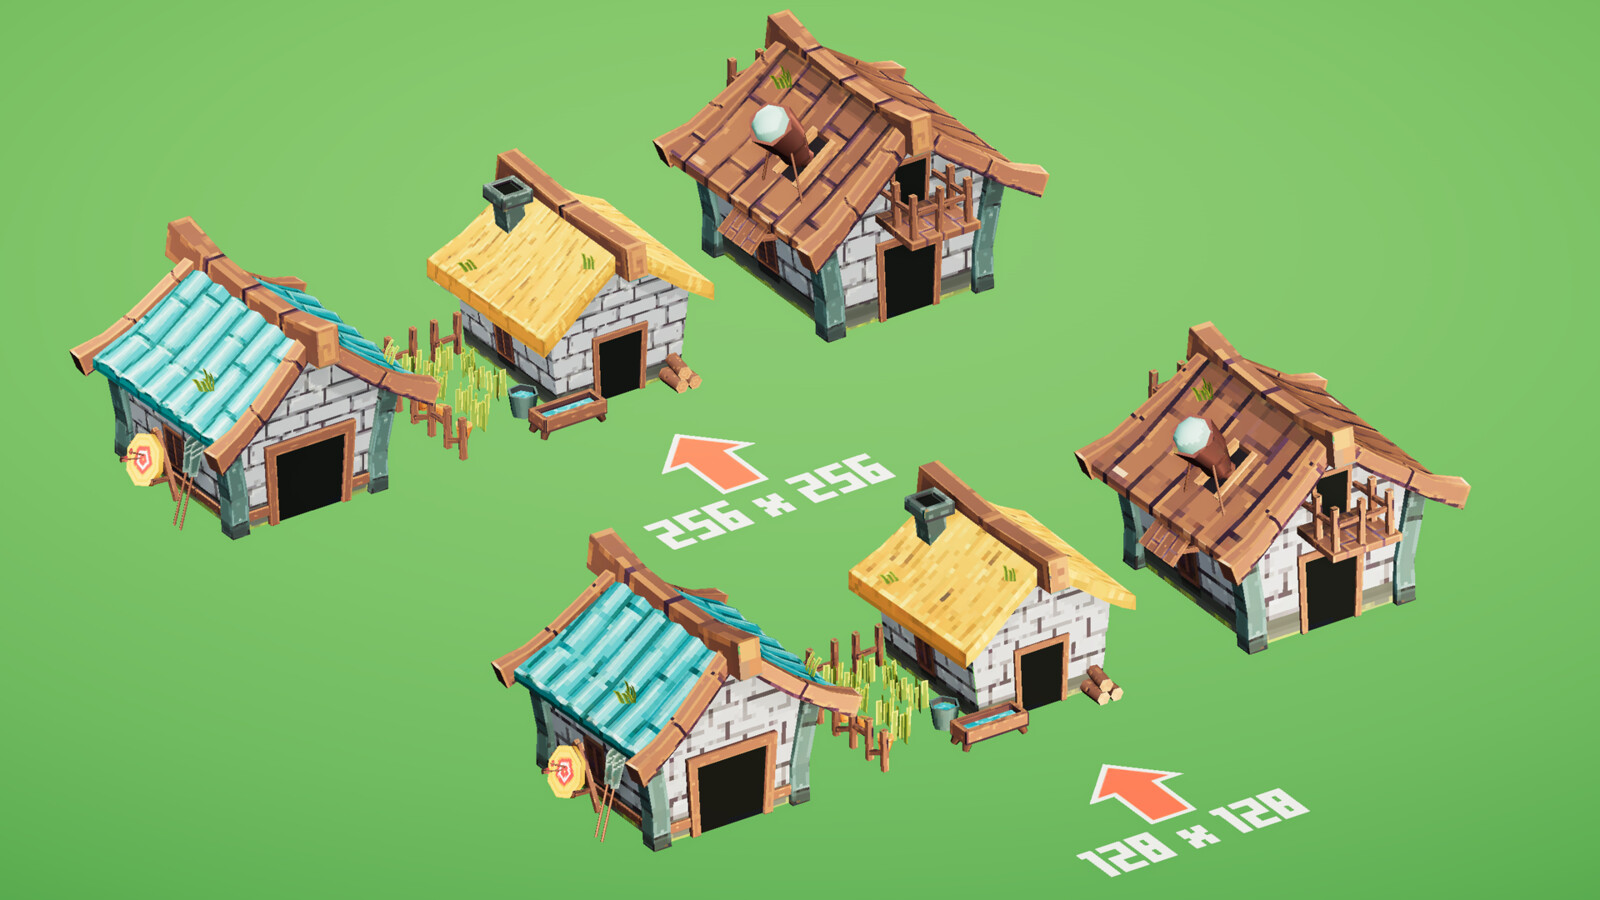 Mobile RTS - Rustic buildings